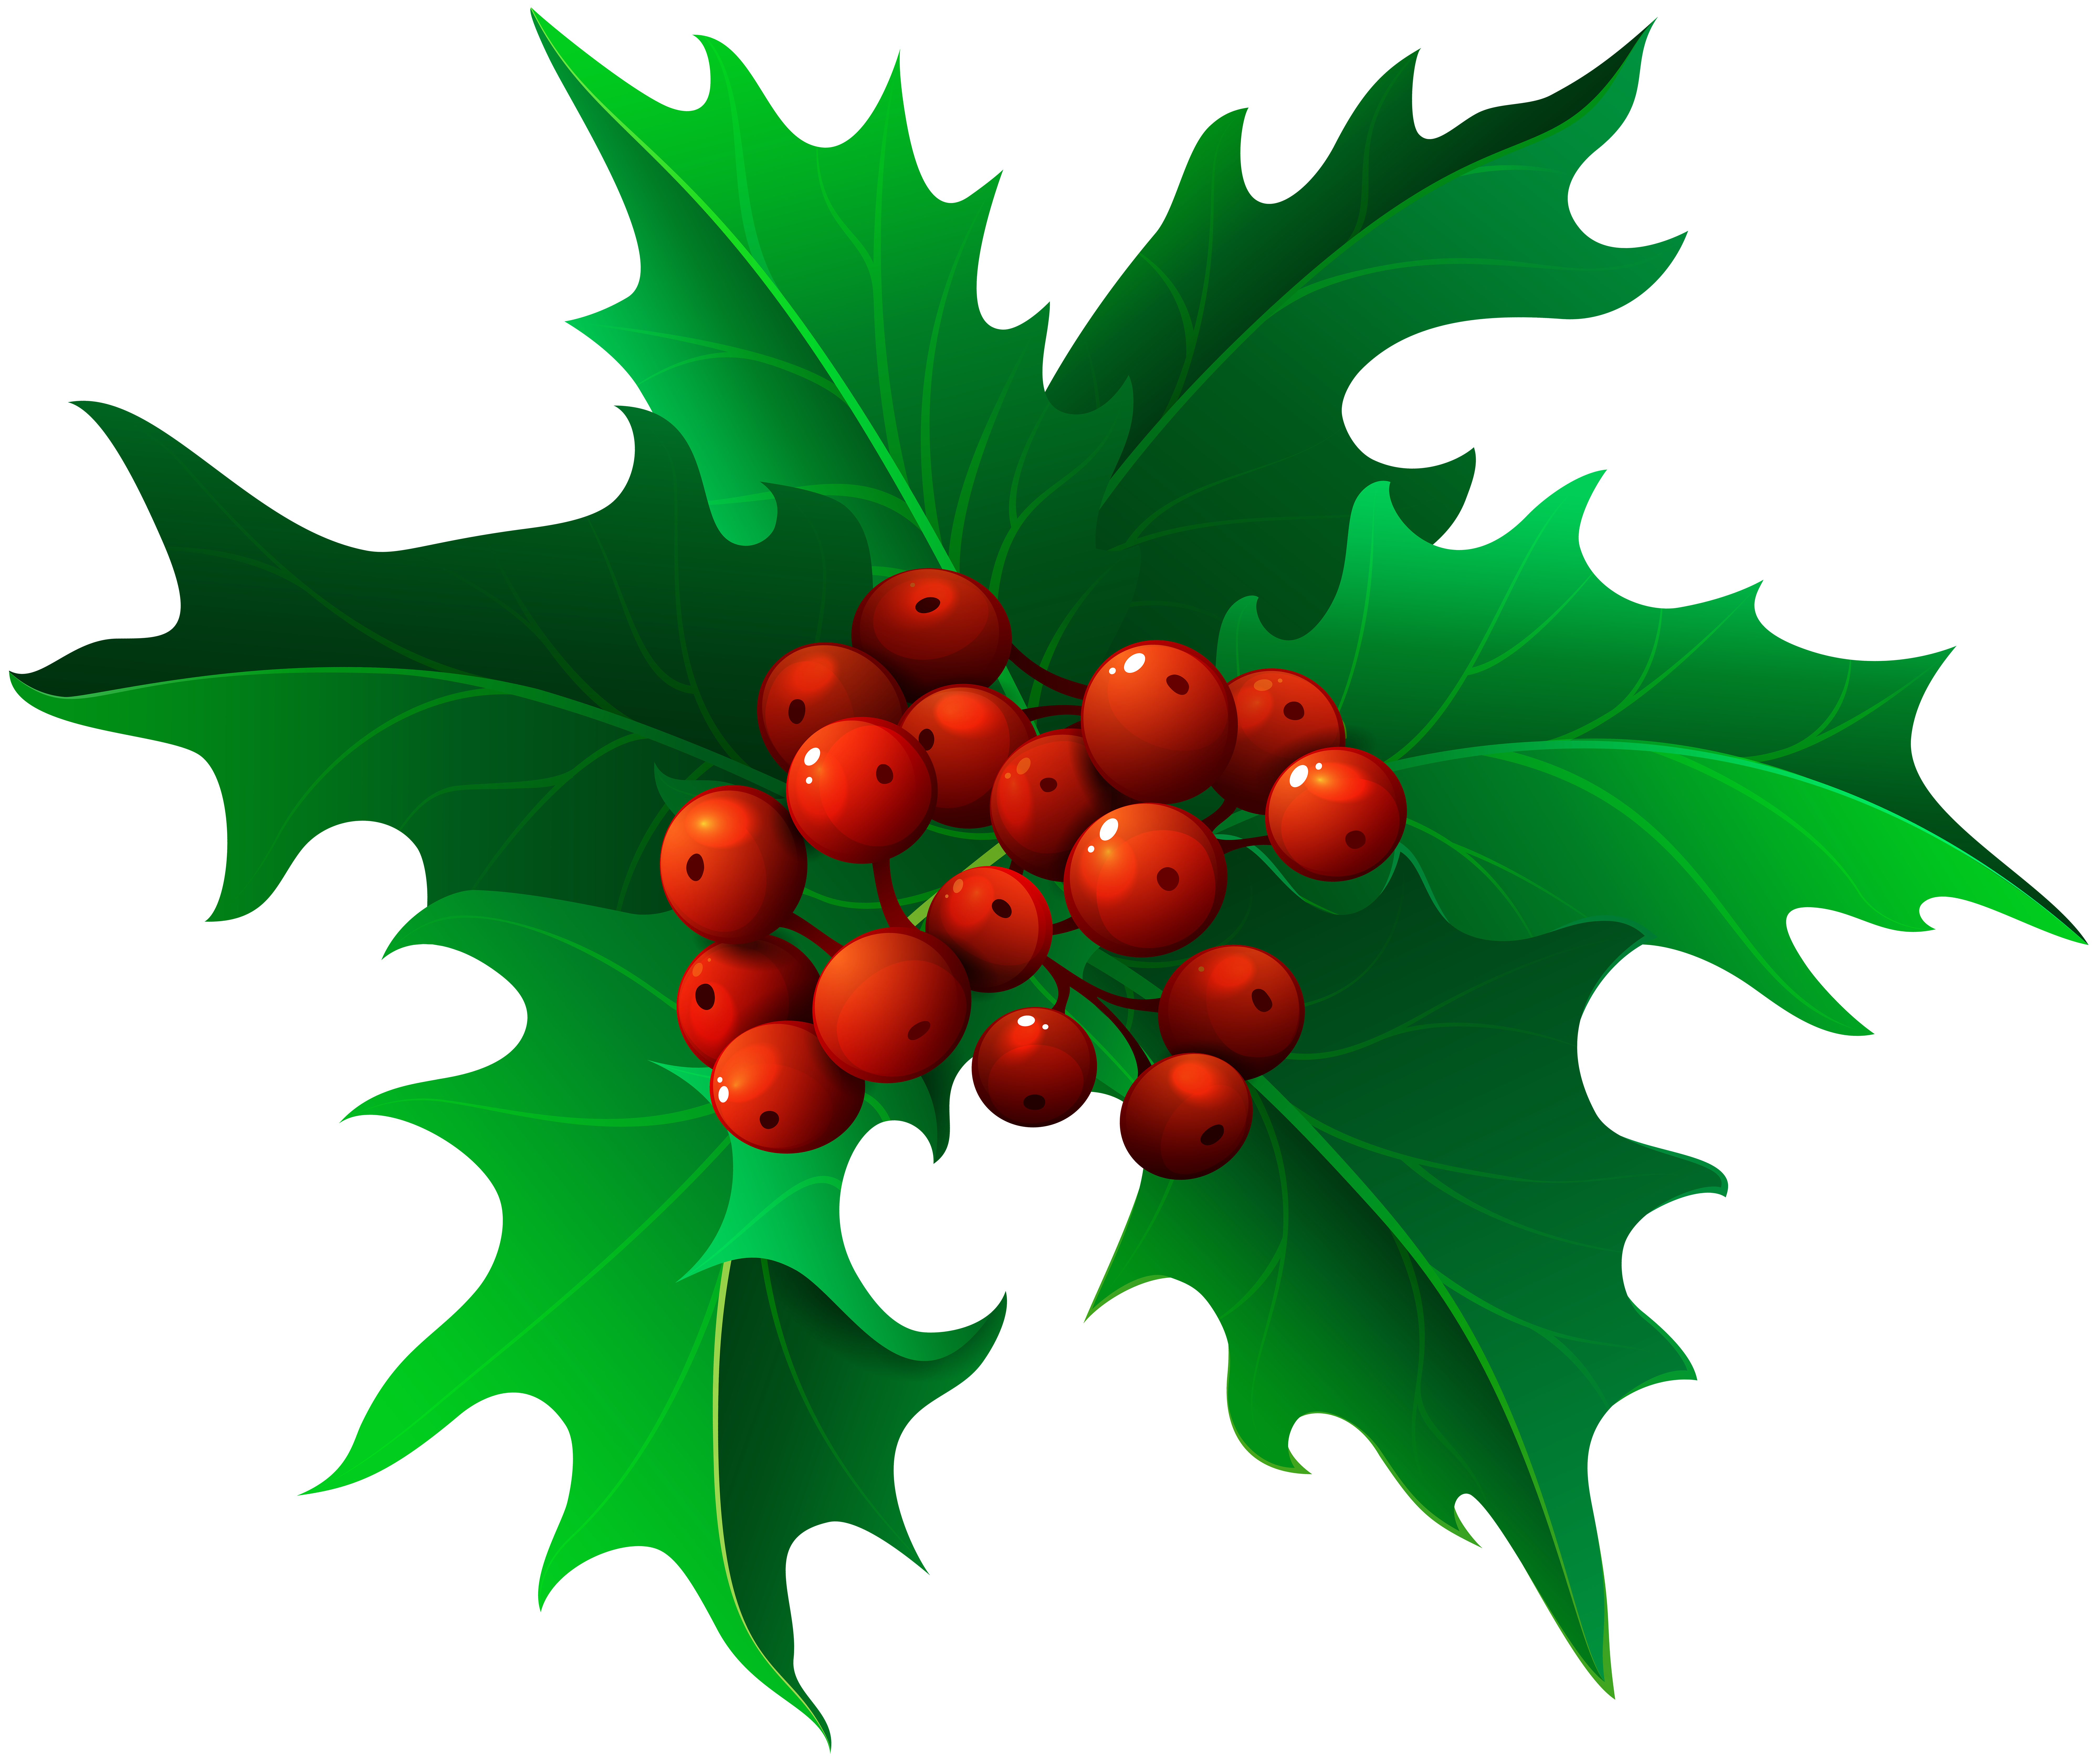 Free christmas holly clipart clip freeuse stock Mistletoe Christmas Clip art - Christmas Holly Mistletoe Transparent ... clip freeuse stock